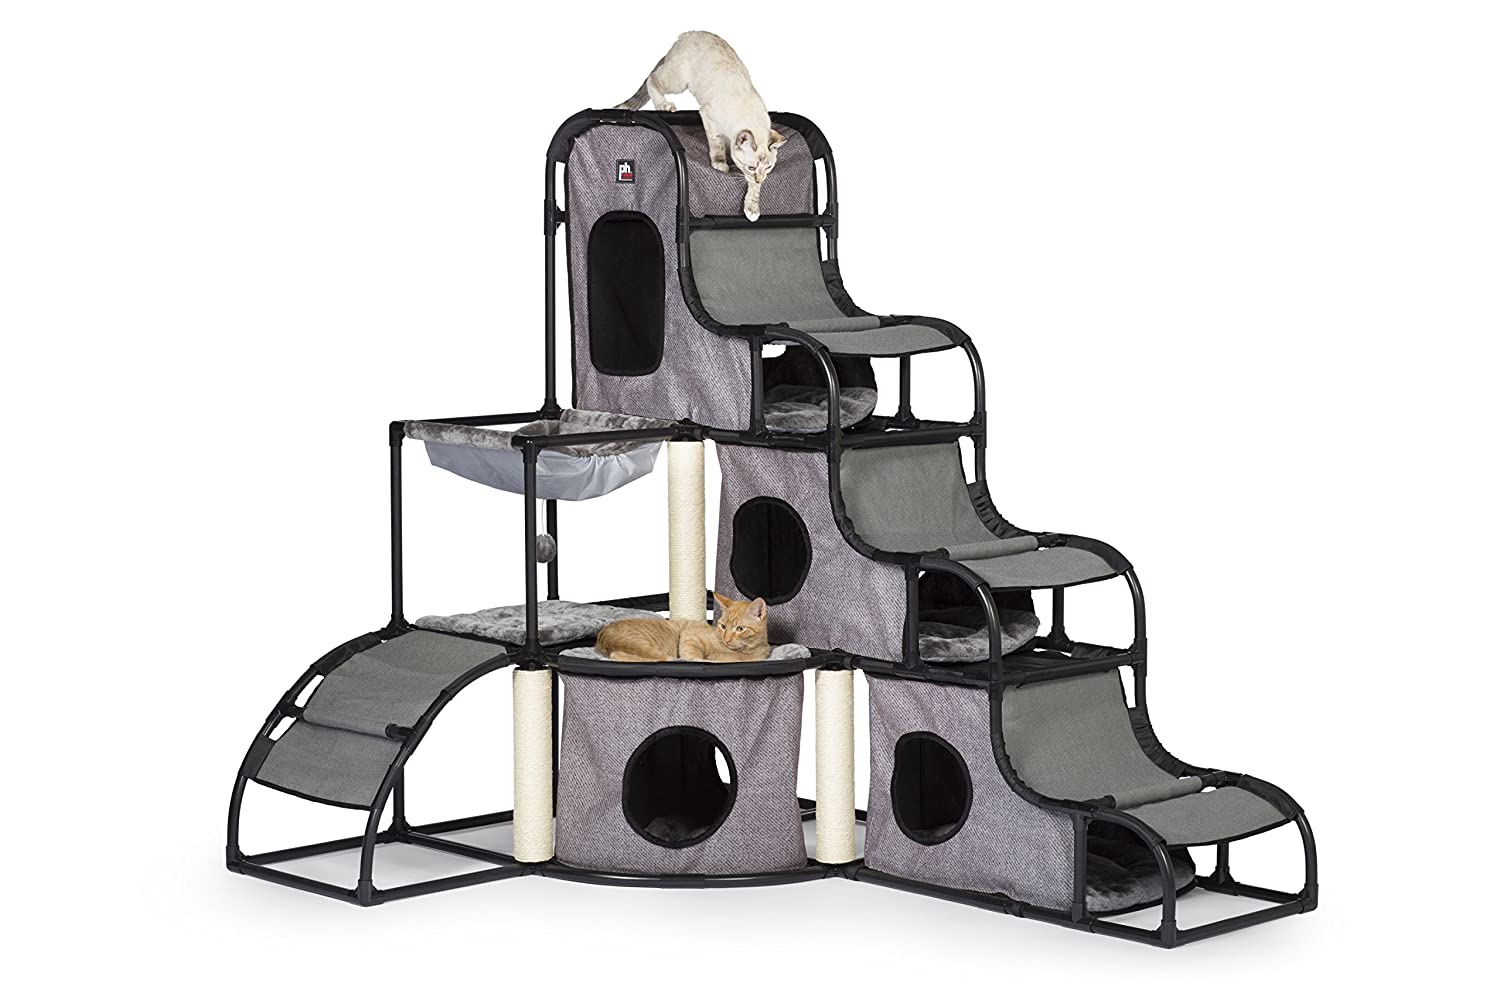 Prevue Pet Products Catville Tower 7240, Gray